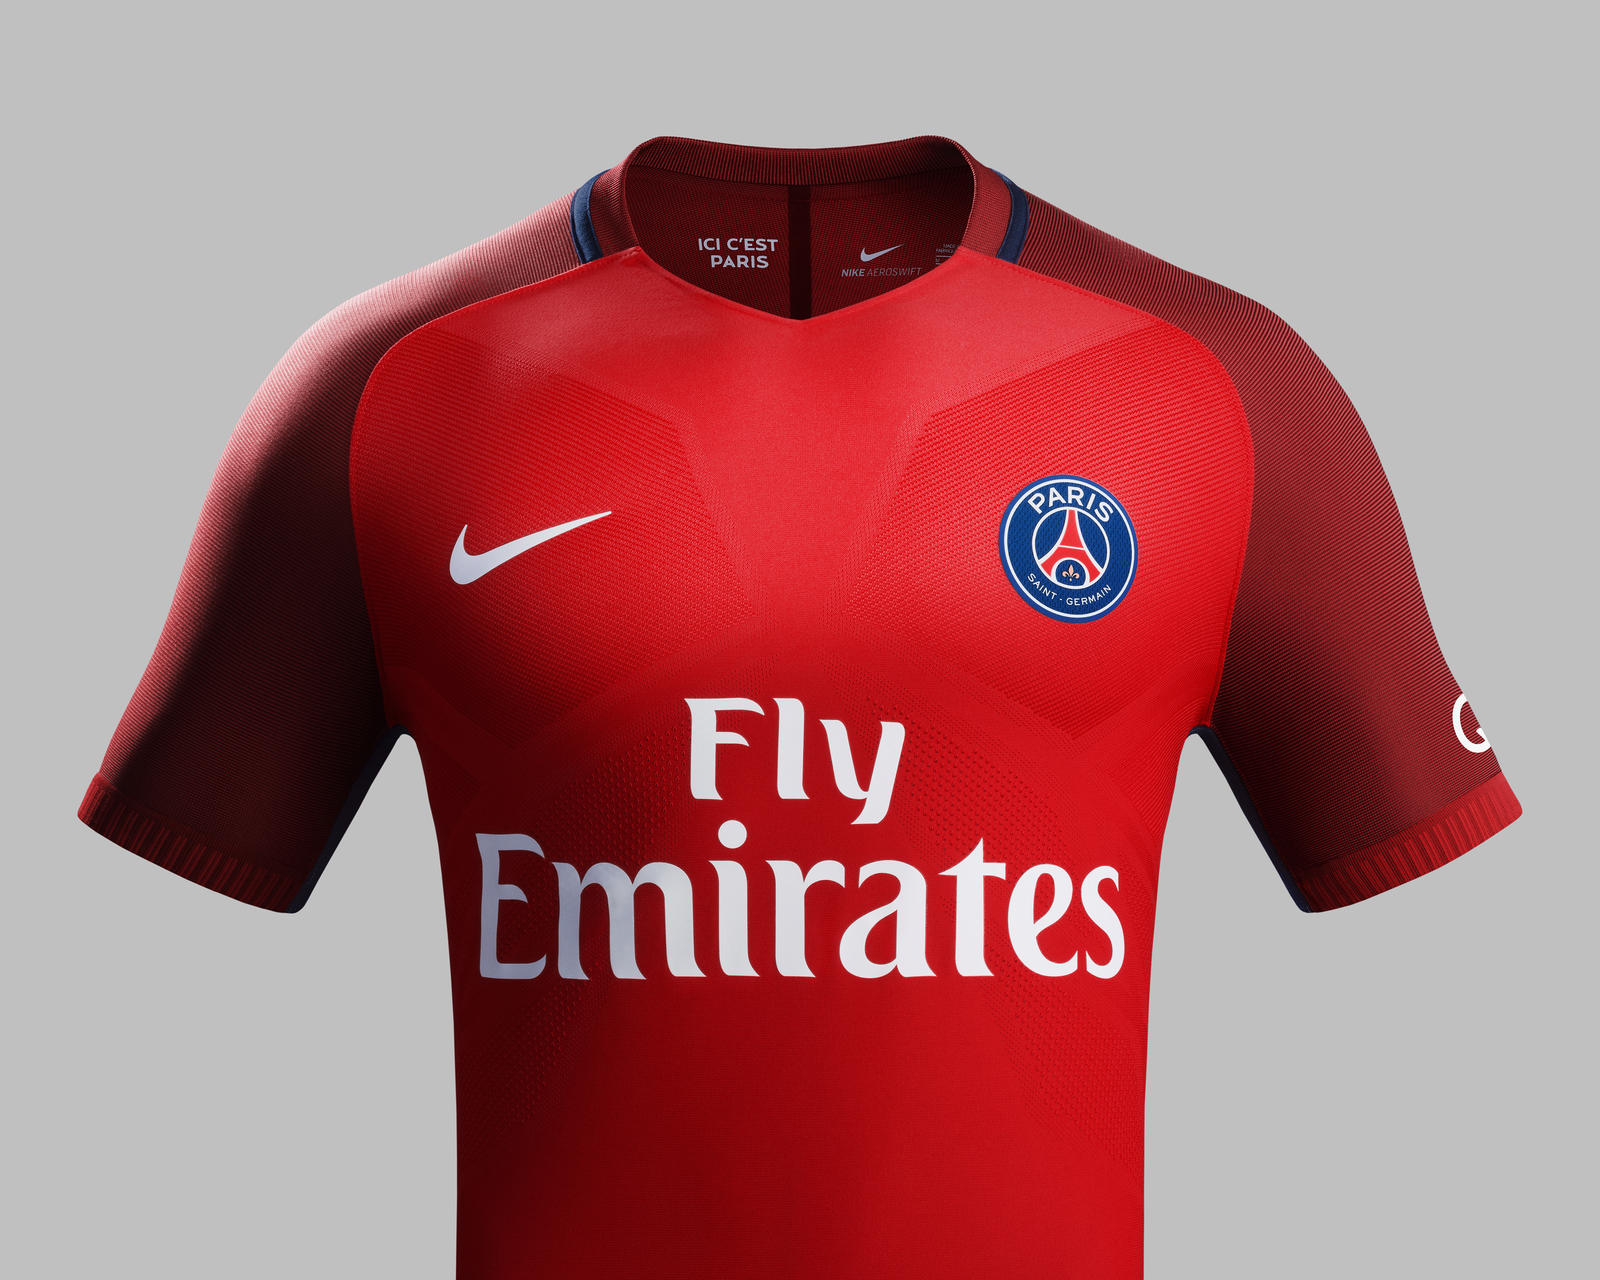 newest collection 74bb0 3d840 Paris Saint-Germain Away Kit 2016-17 - Nike News